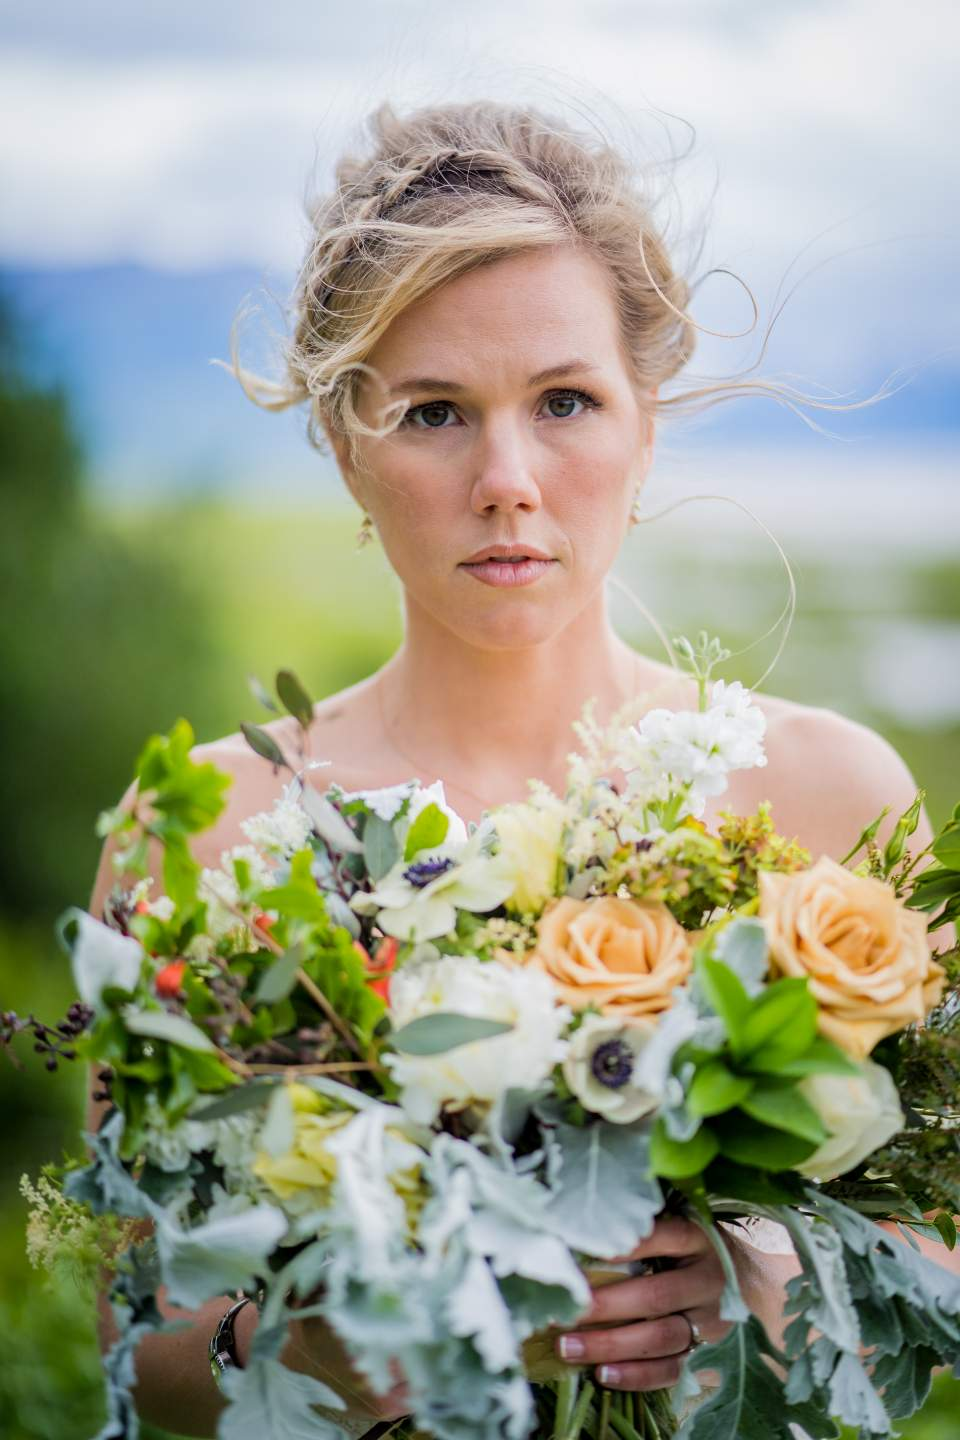 stoic portrait of bride